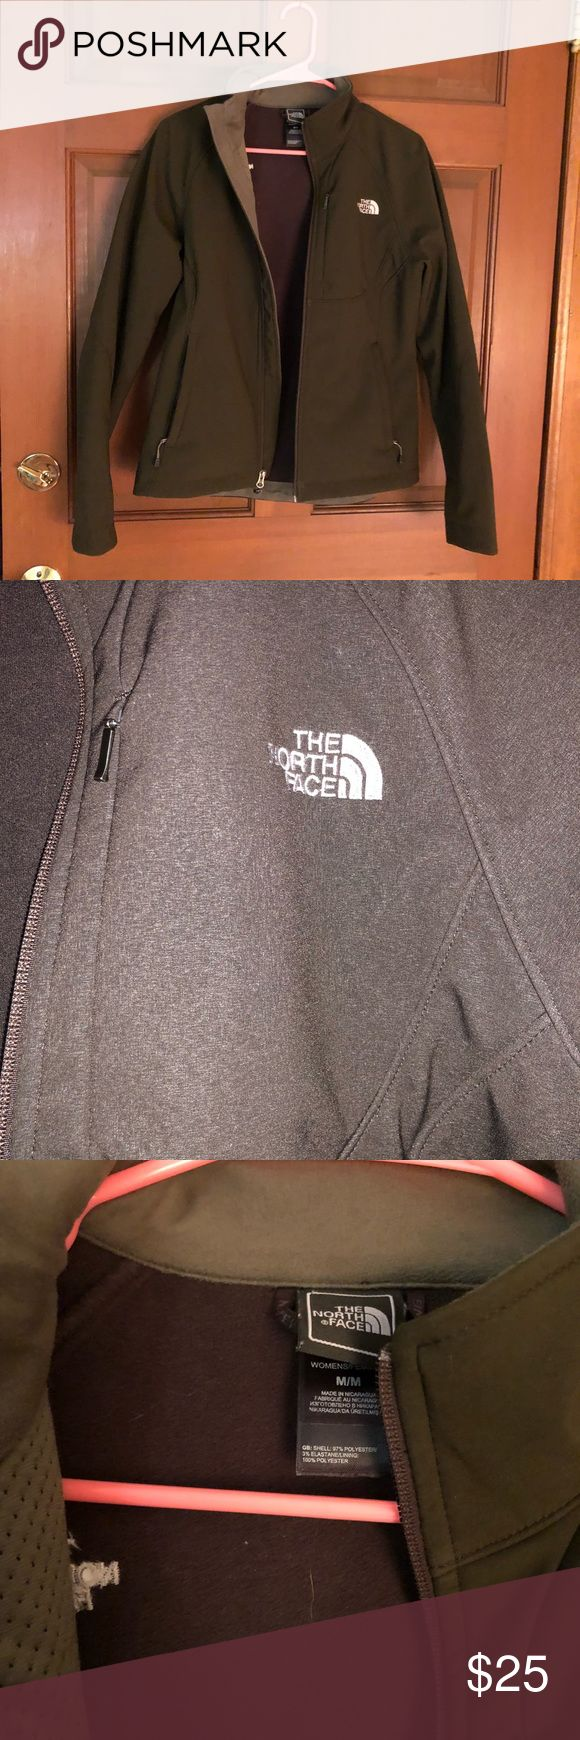 Women's North Face Jacket Gently used Women's North Face Jacket! Beautiful brown color.   Please feel free to make an offer or bundle for a discount!!! North Face Jackets & Coats